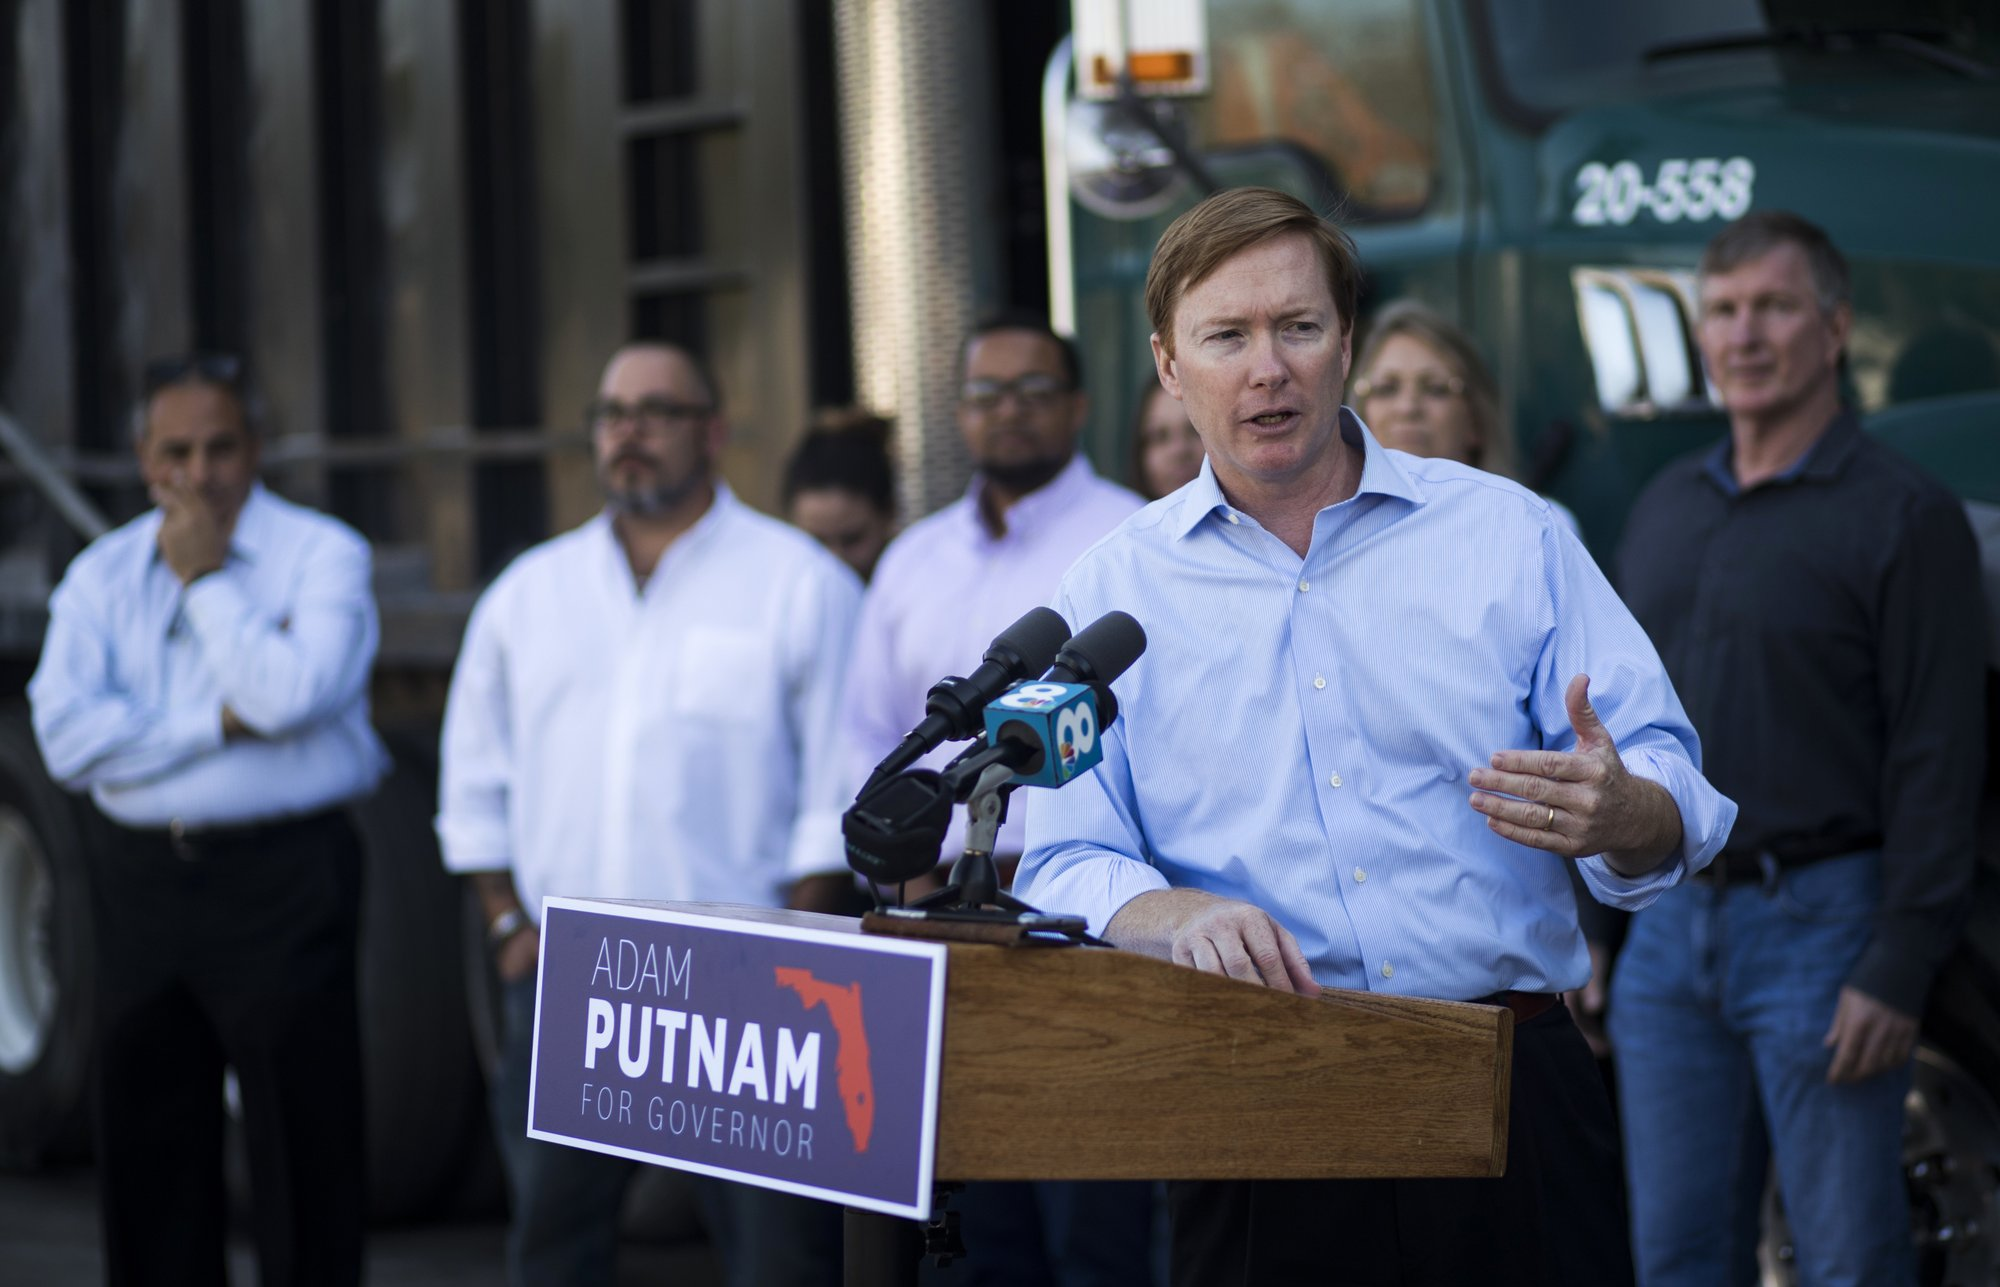 Florida's expensive race for governor highlights lax laws